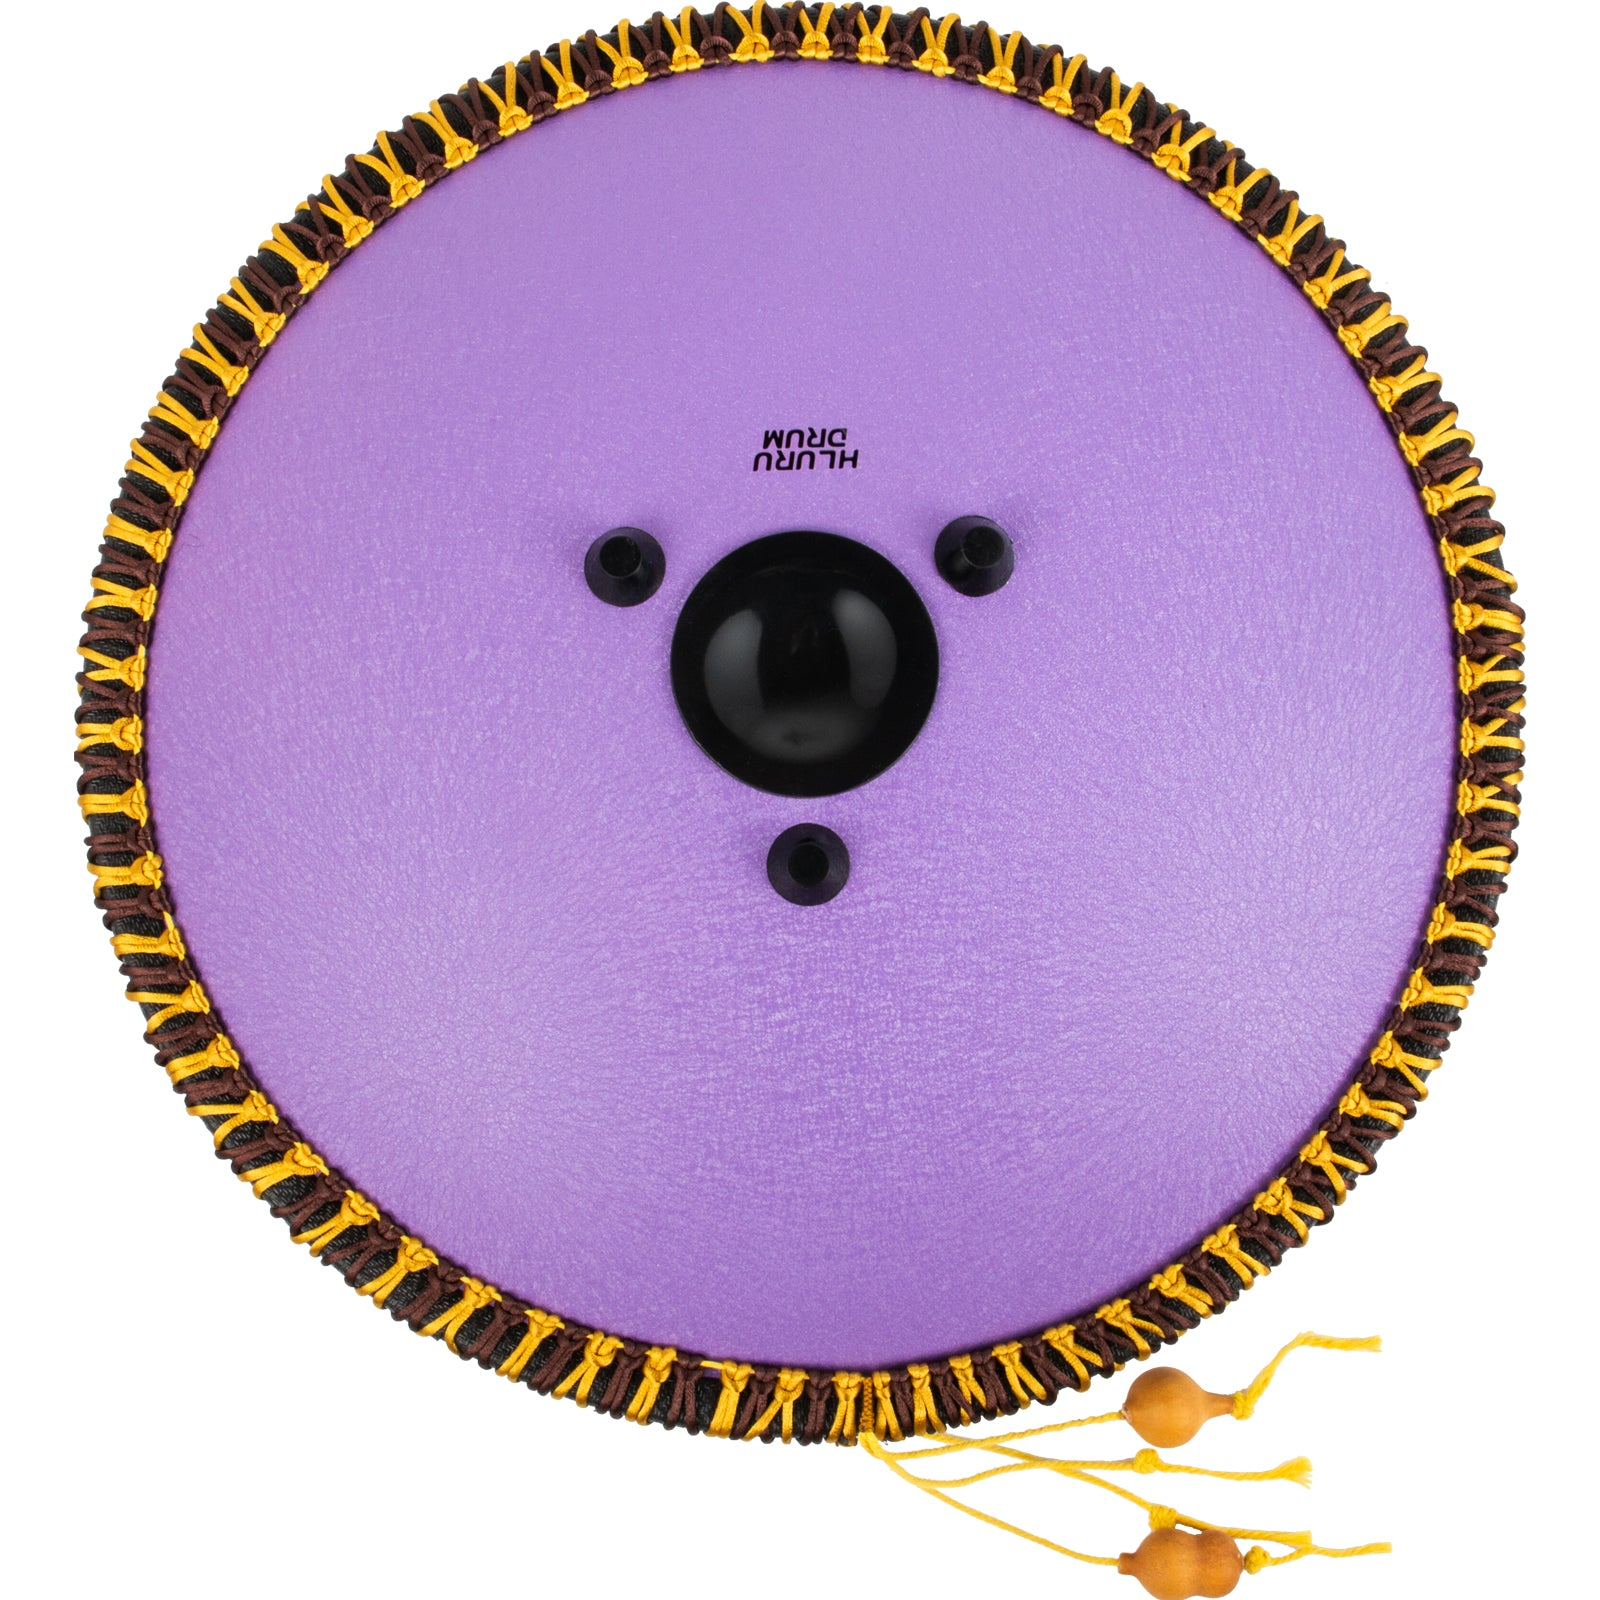 Tongue Drum 14 Notes Dish Shape Drum 14 Inches Dia. With Rope Decoration, Purple